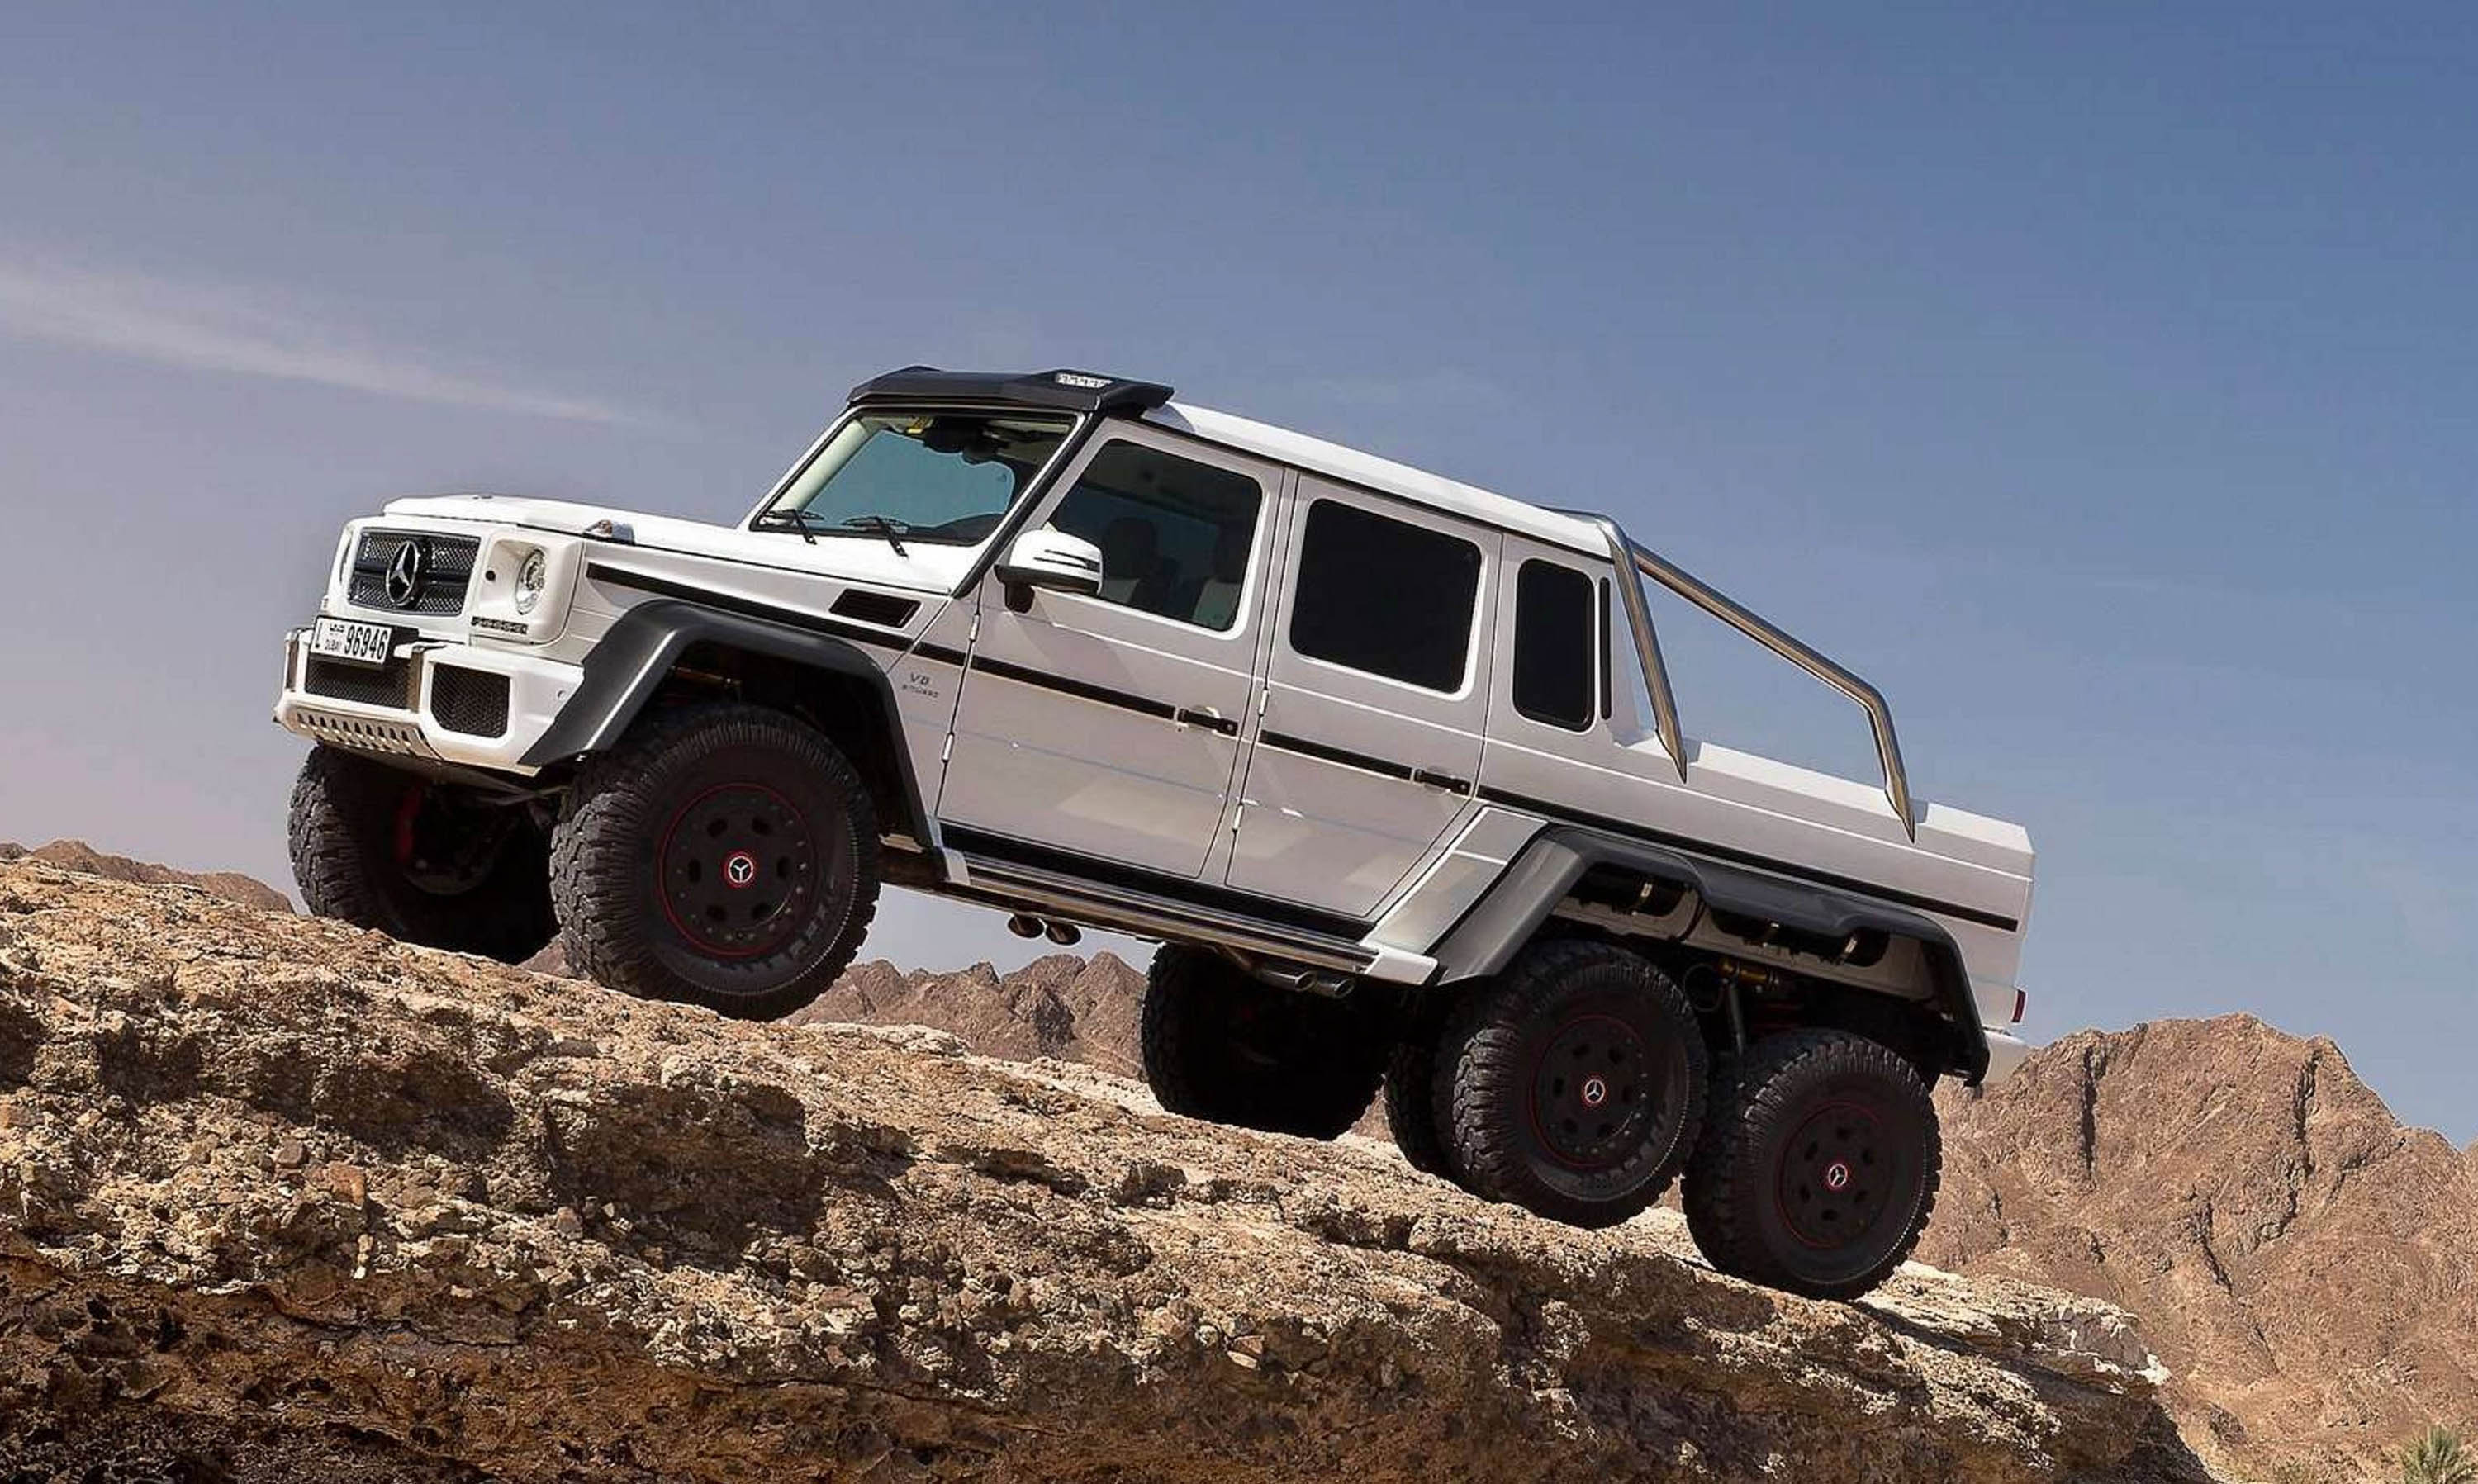 Mercedes benz g 63 amg 6x6 photos photogallery with 6 for Mercedes benz amg 6x6